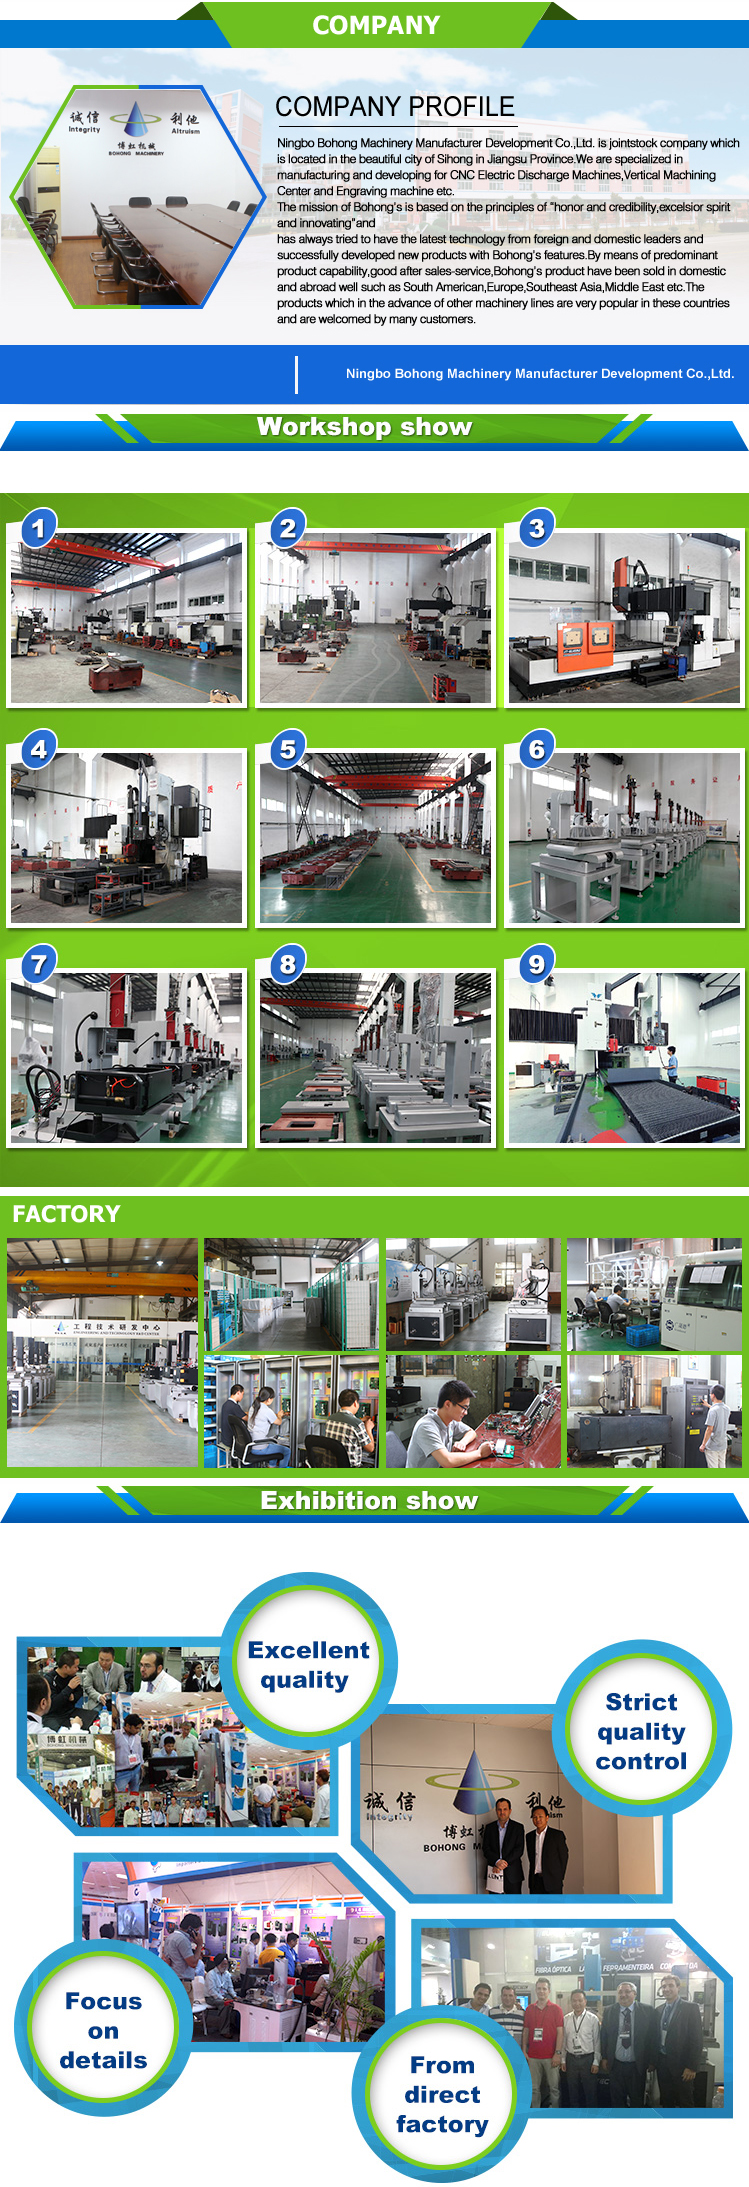 CNC Wire Cutting EDM Machine Use Moly Wire DK7725 From China Bohong Machinery